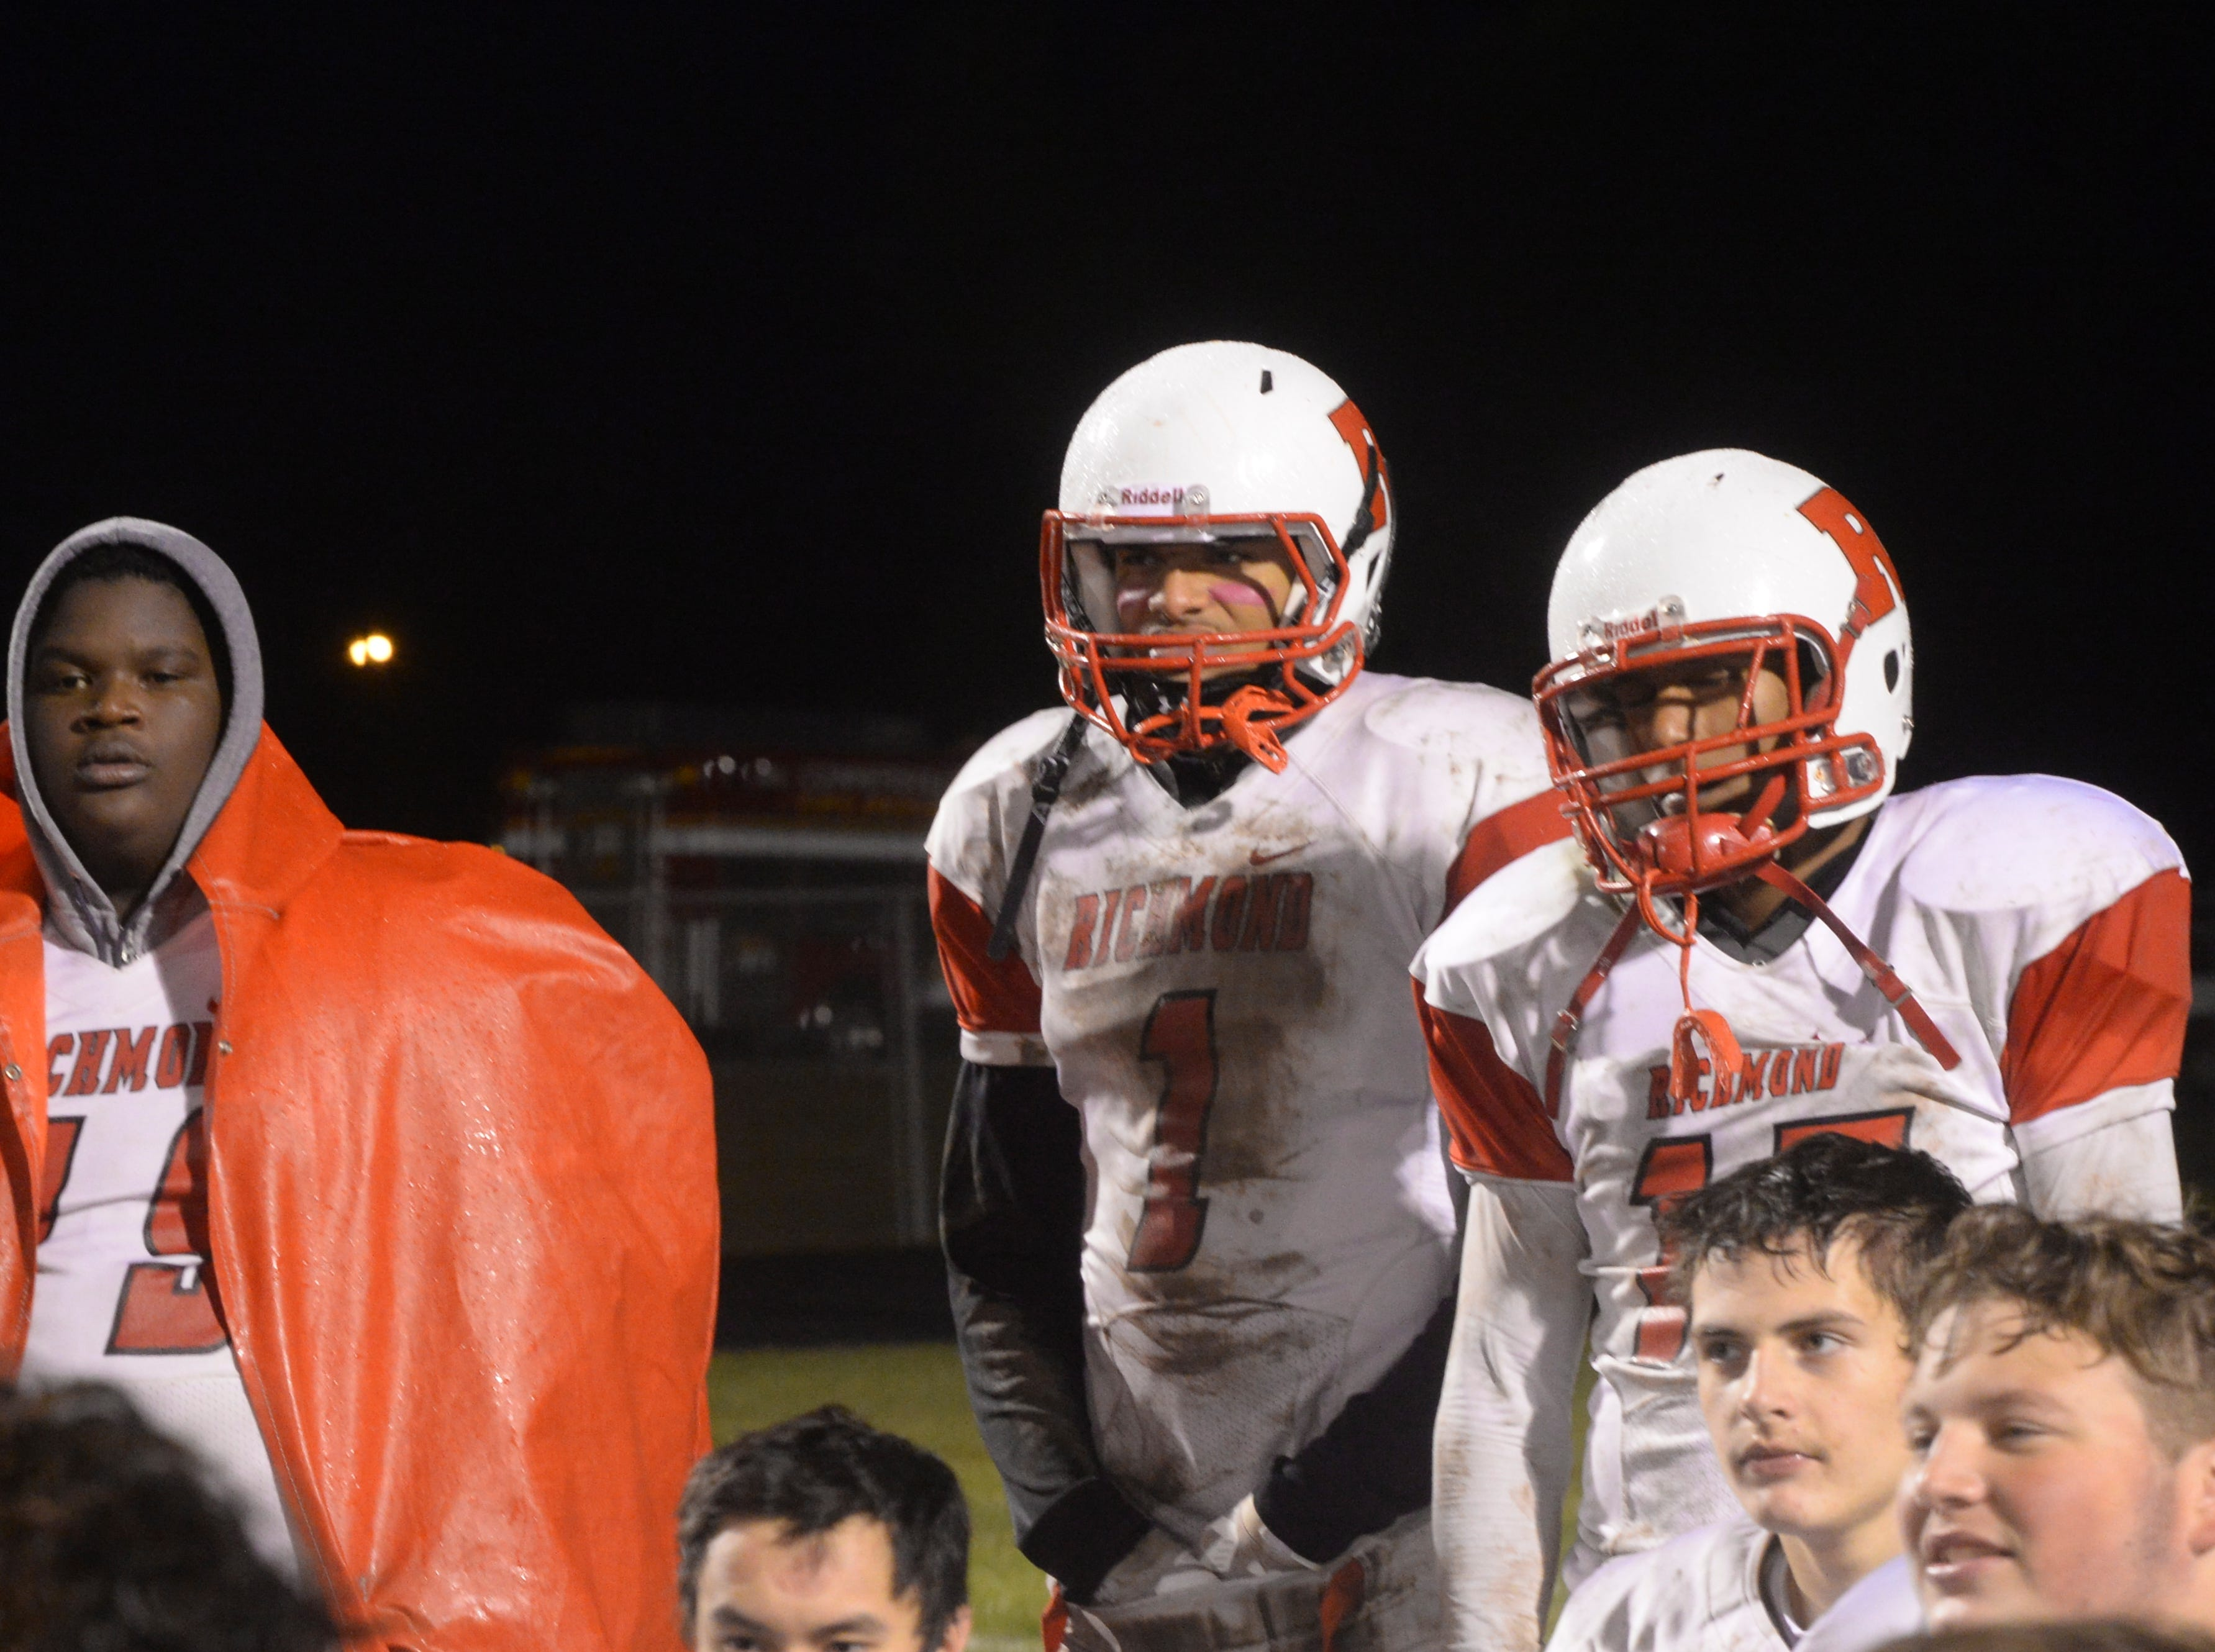 The Richmond High School football team defeated Connersville 31-7 in the sectional opener Friday, Oct. 19, 2018.